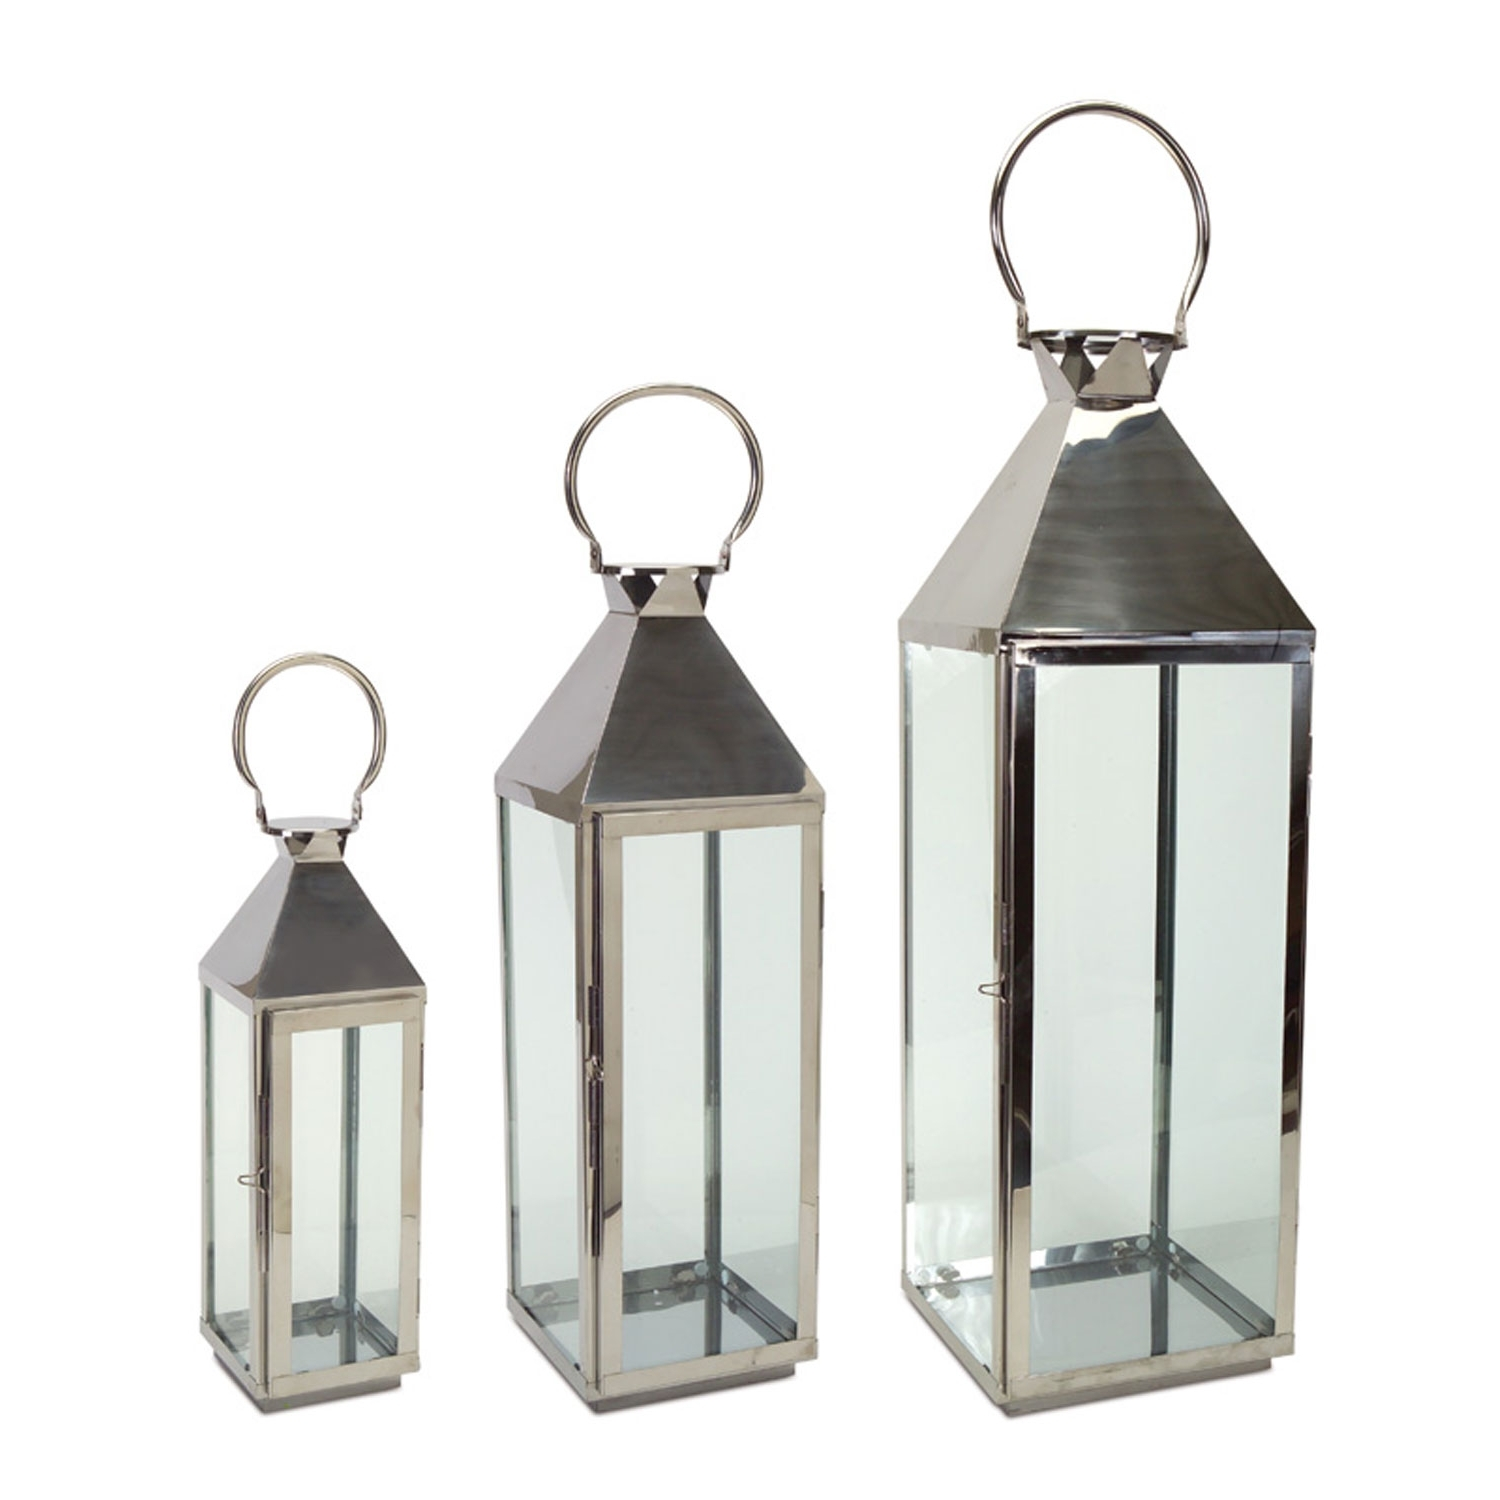 2018 Outdoor Hanging Lanterns Candles Throughout Candle Lanterns, Outdoor Hanging Lanterns, Decorative On Sale (View 16 of 20)